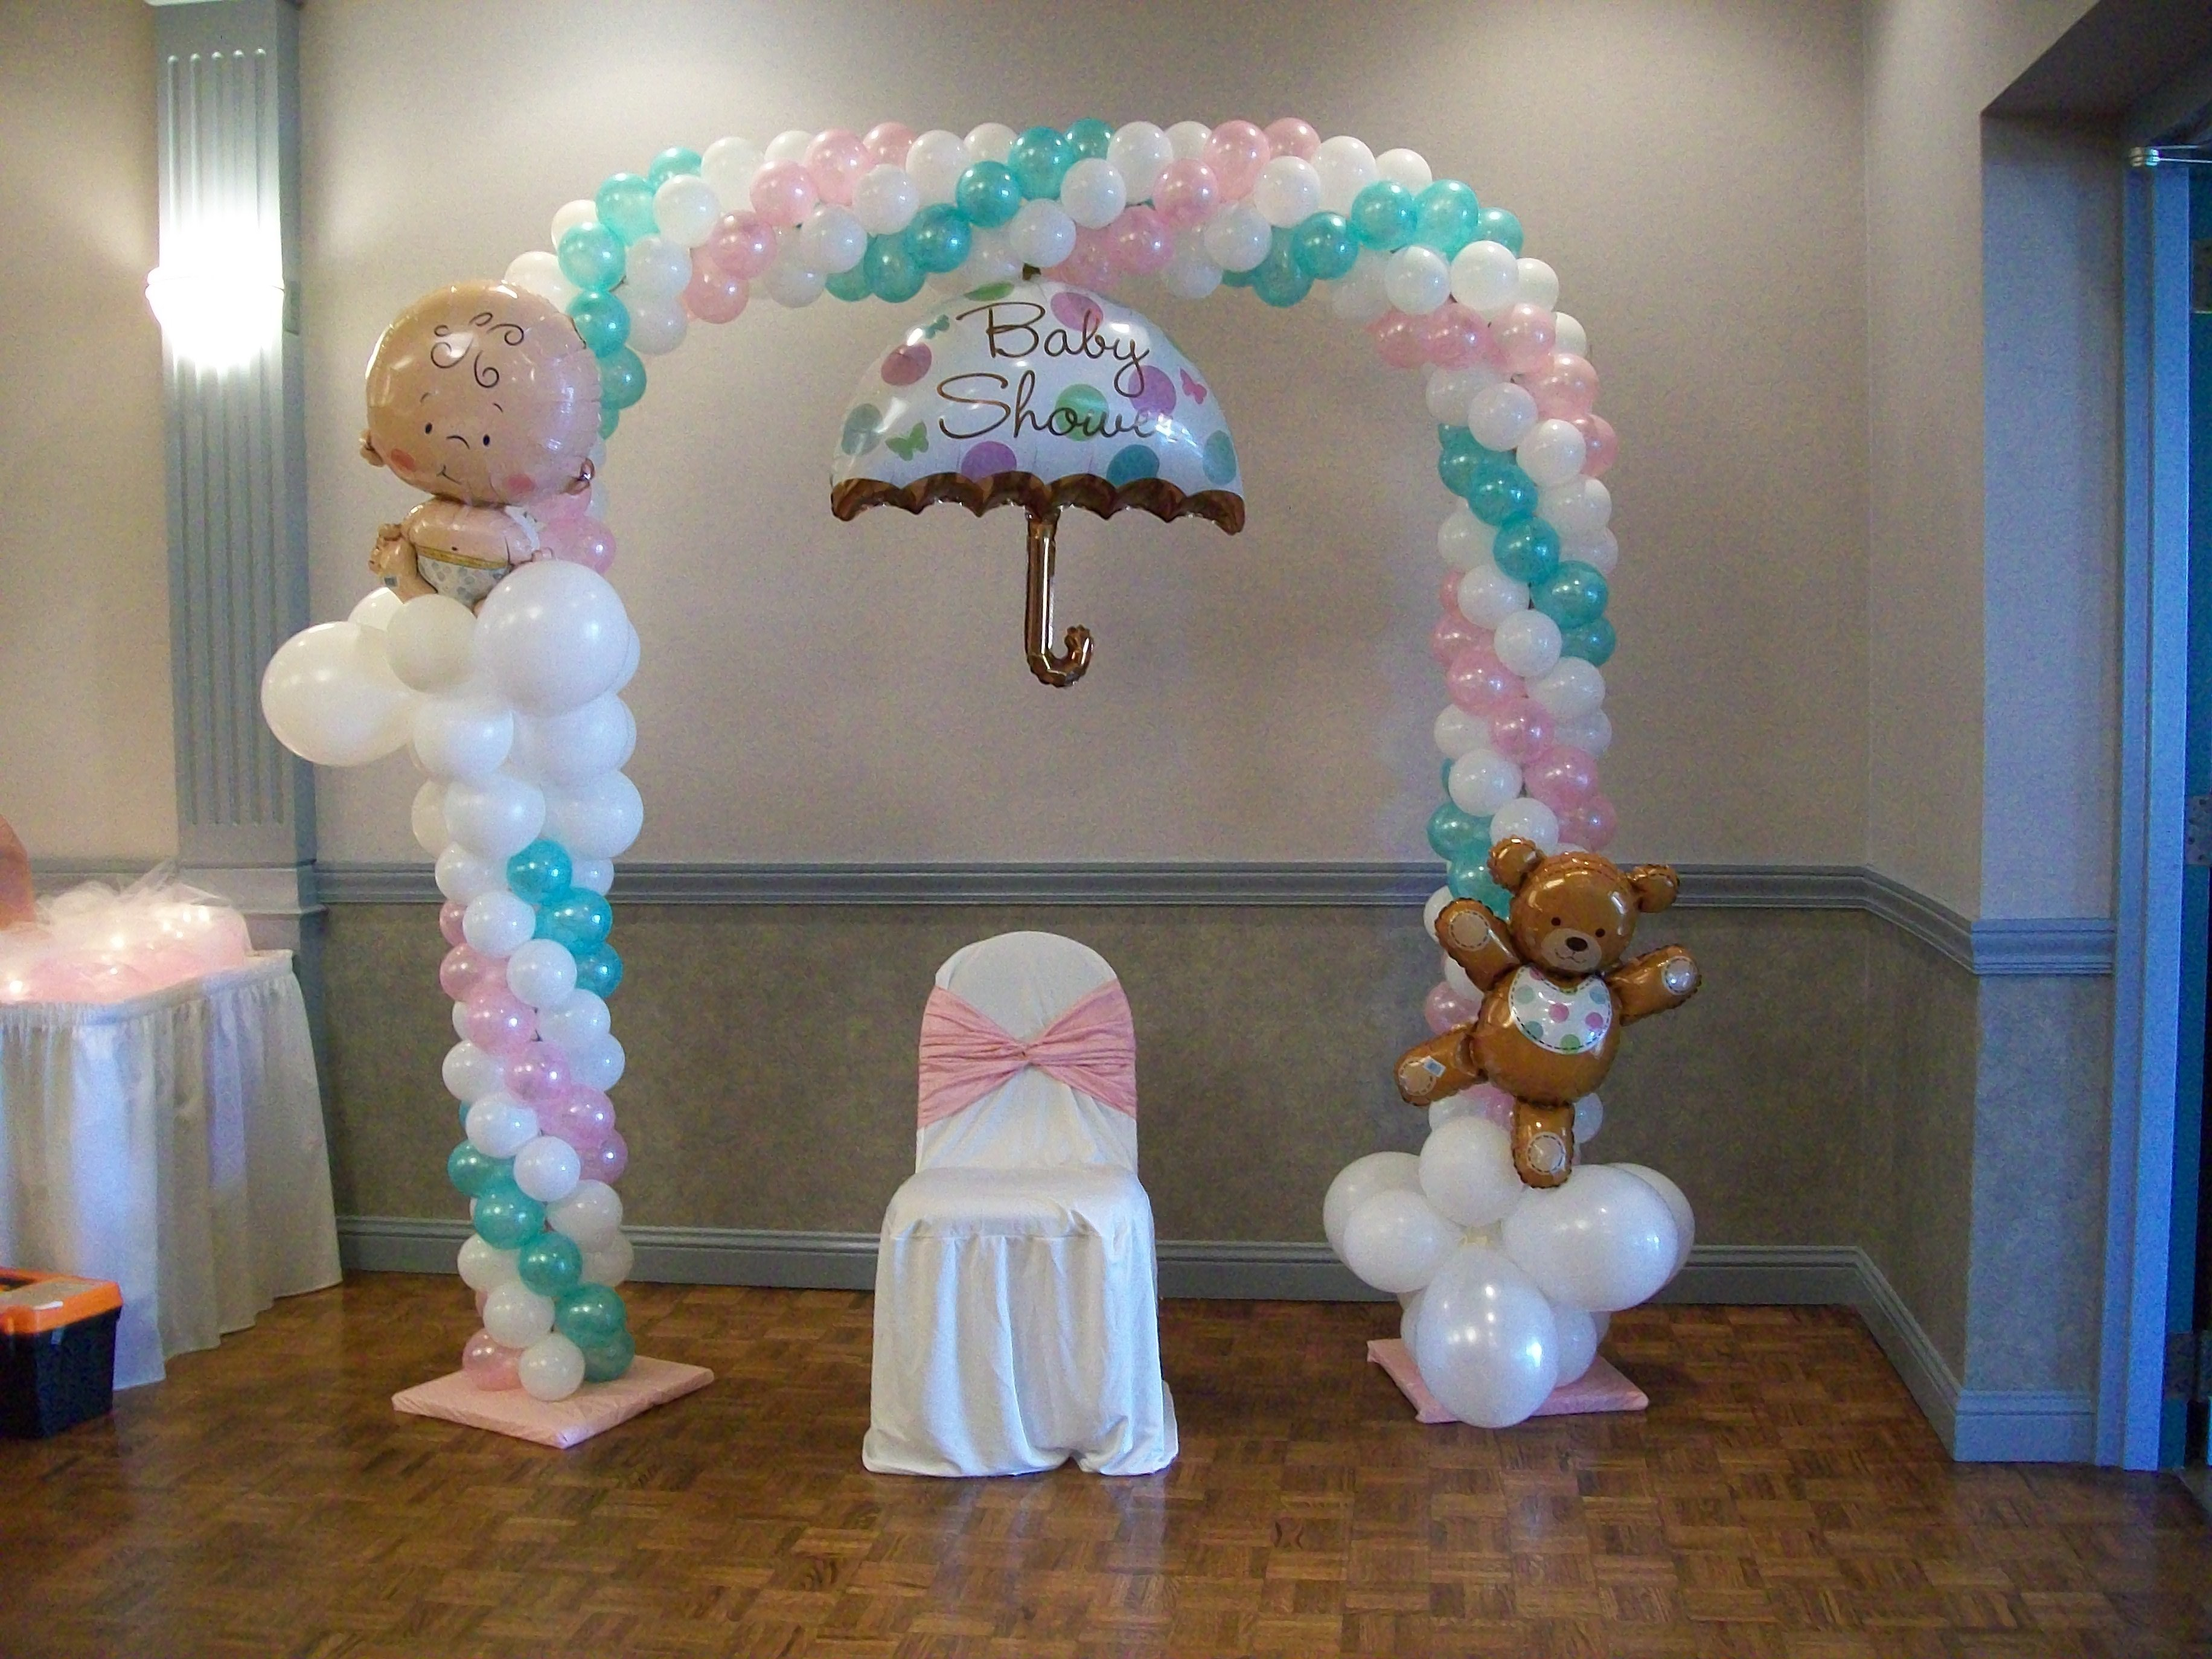 10 Nice Baby Shower Balloon Decoration Ideas balloon arch for a baby shower heavenly creations events 1 2020